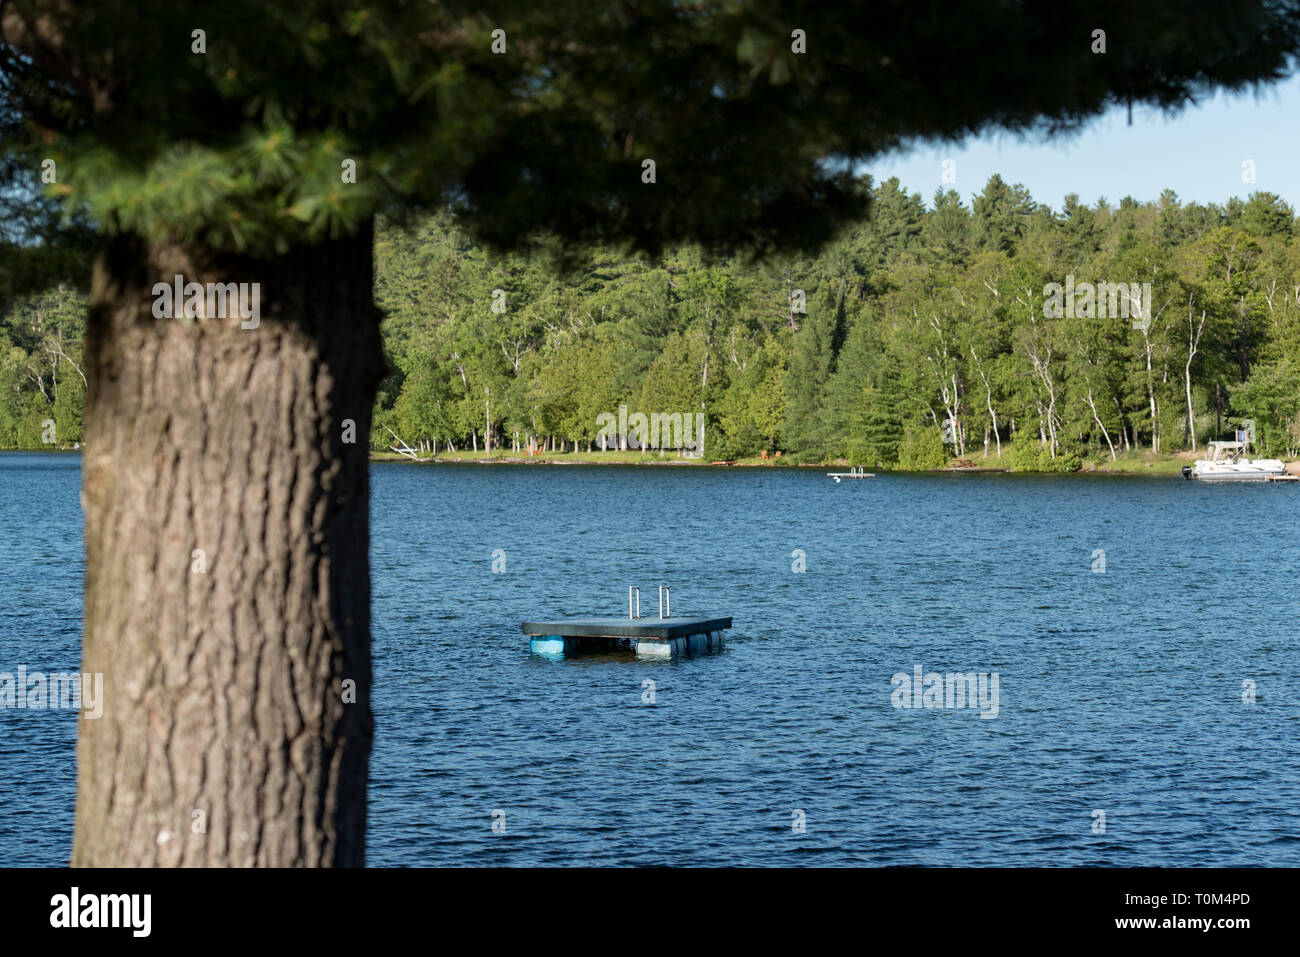 Floating docks on a lake in Ontario Canada's Cottage Country on a summer evening. - Stock Image